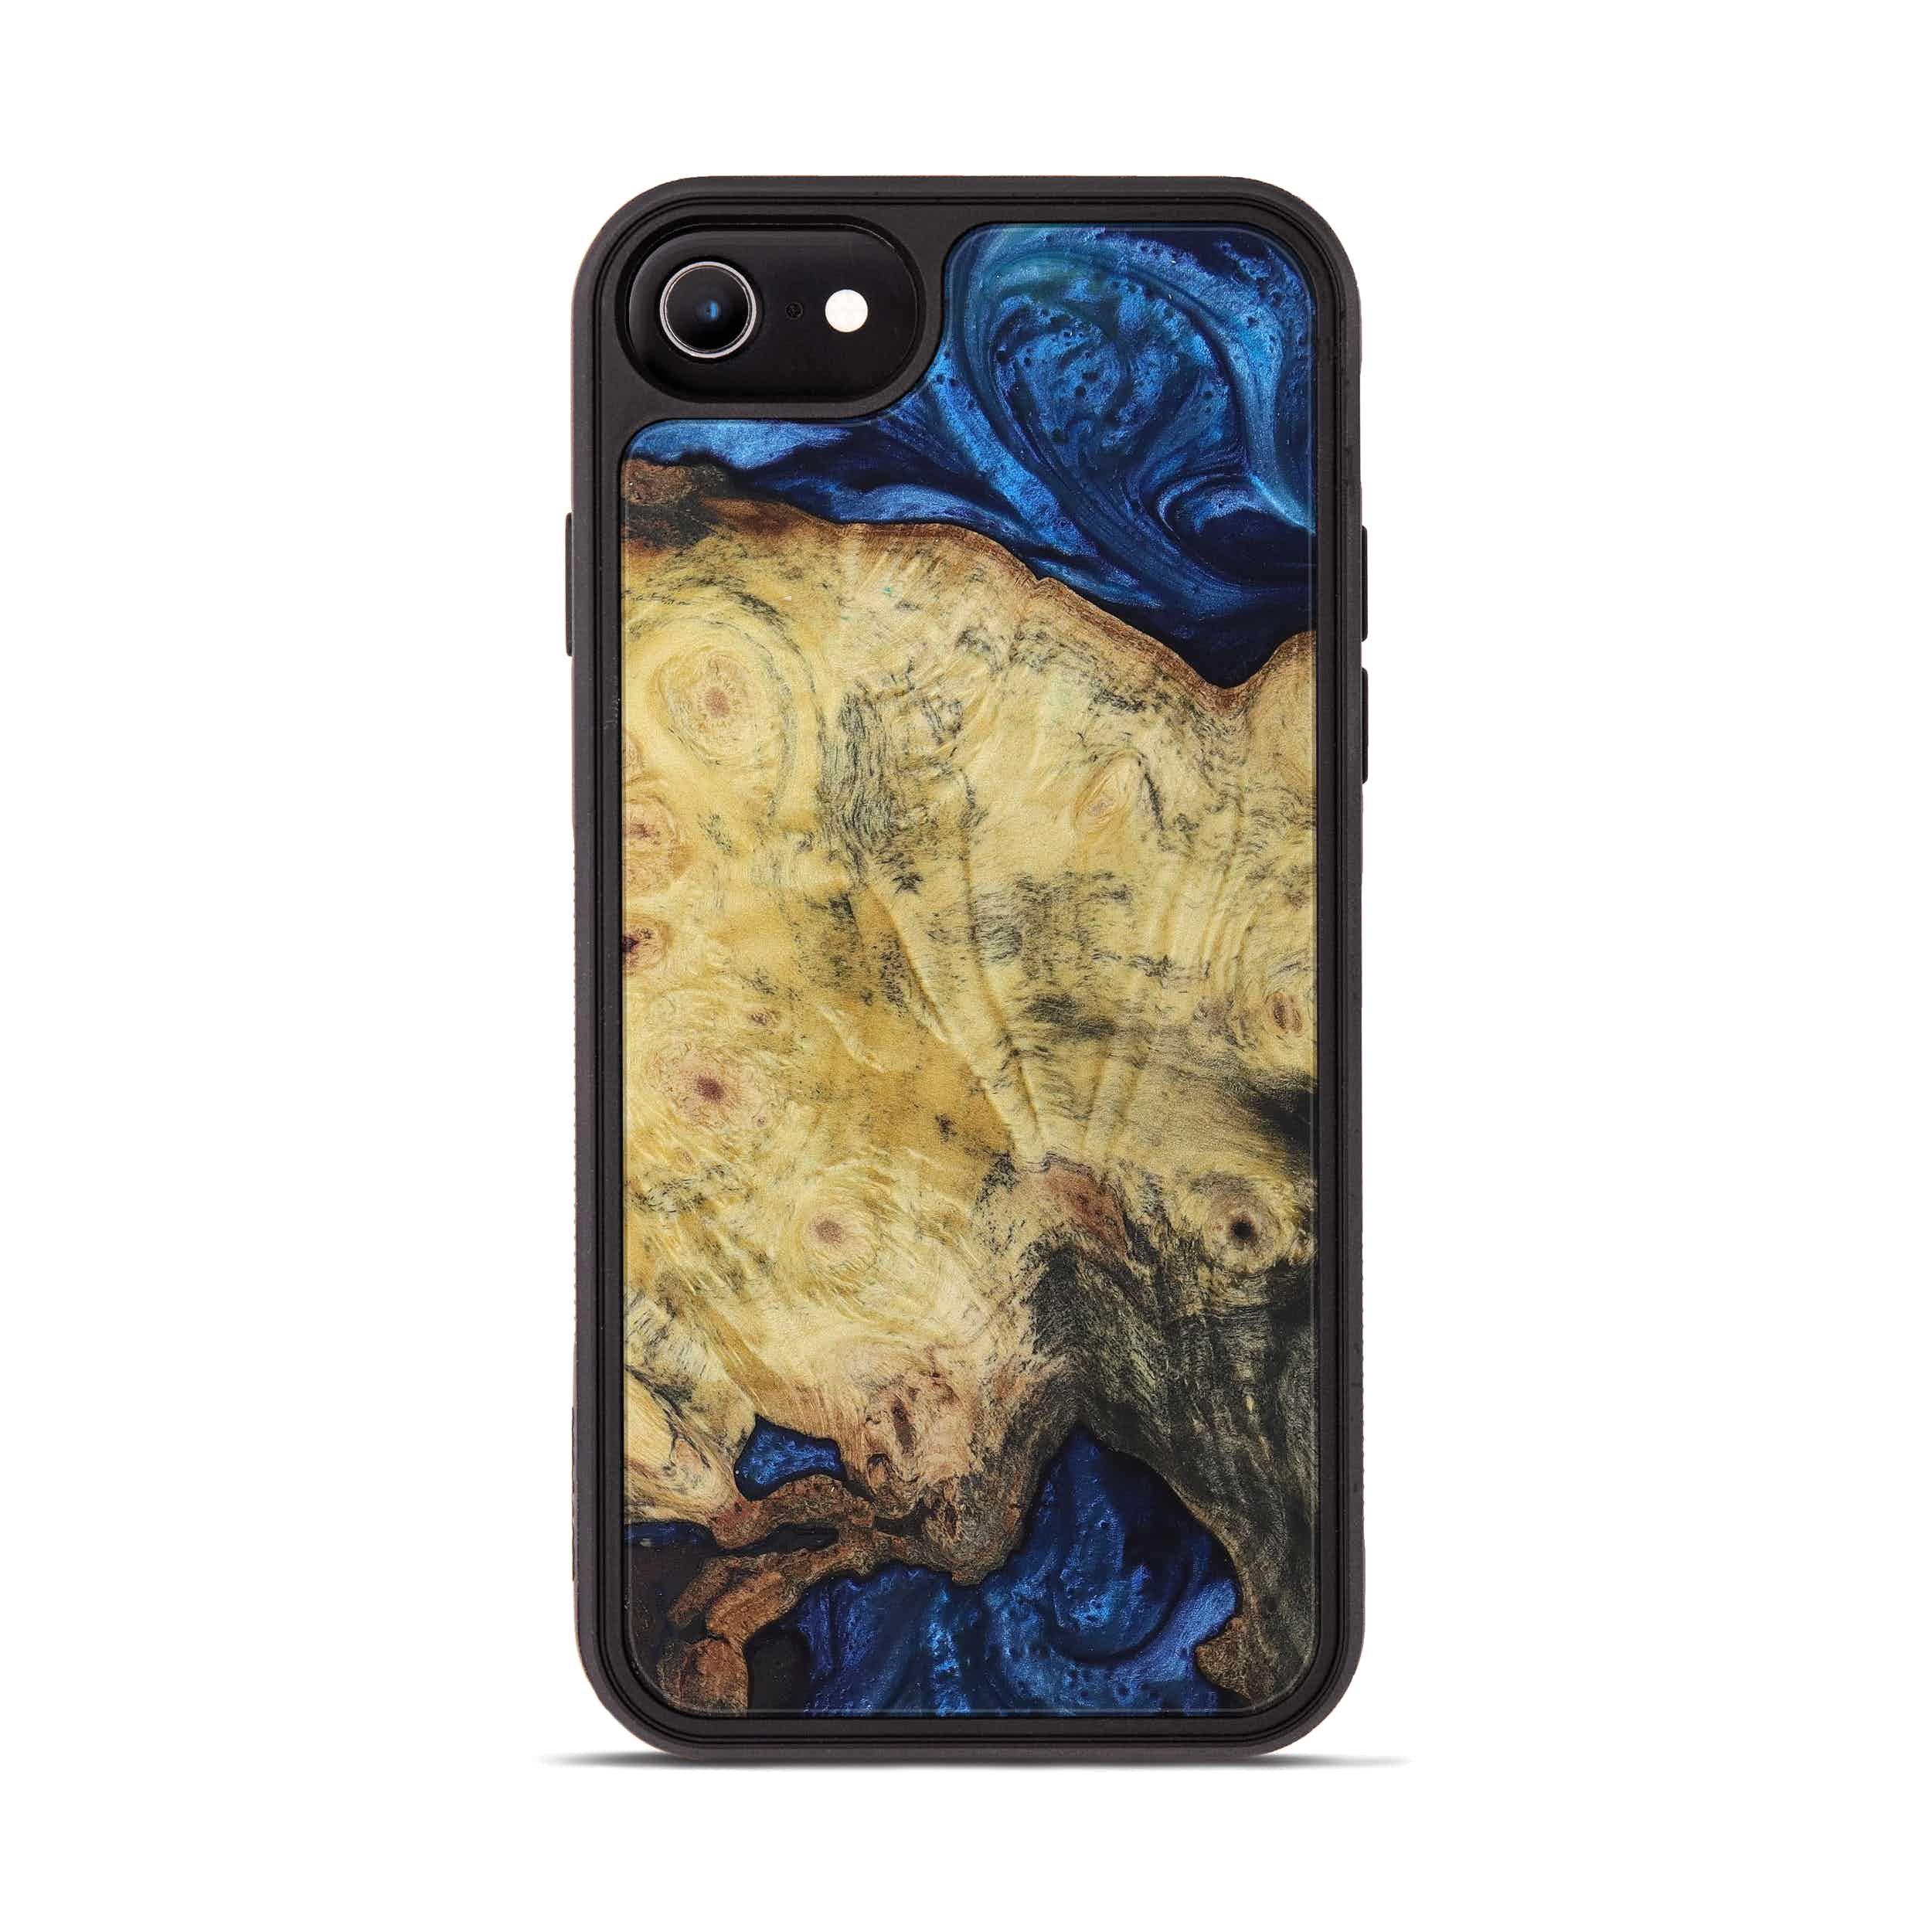 iPhone 6s Wood+Resin Phone Case - Andrzej (Dark Blue, 396081)